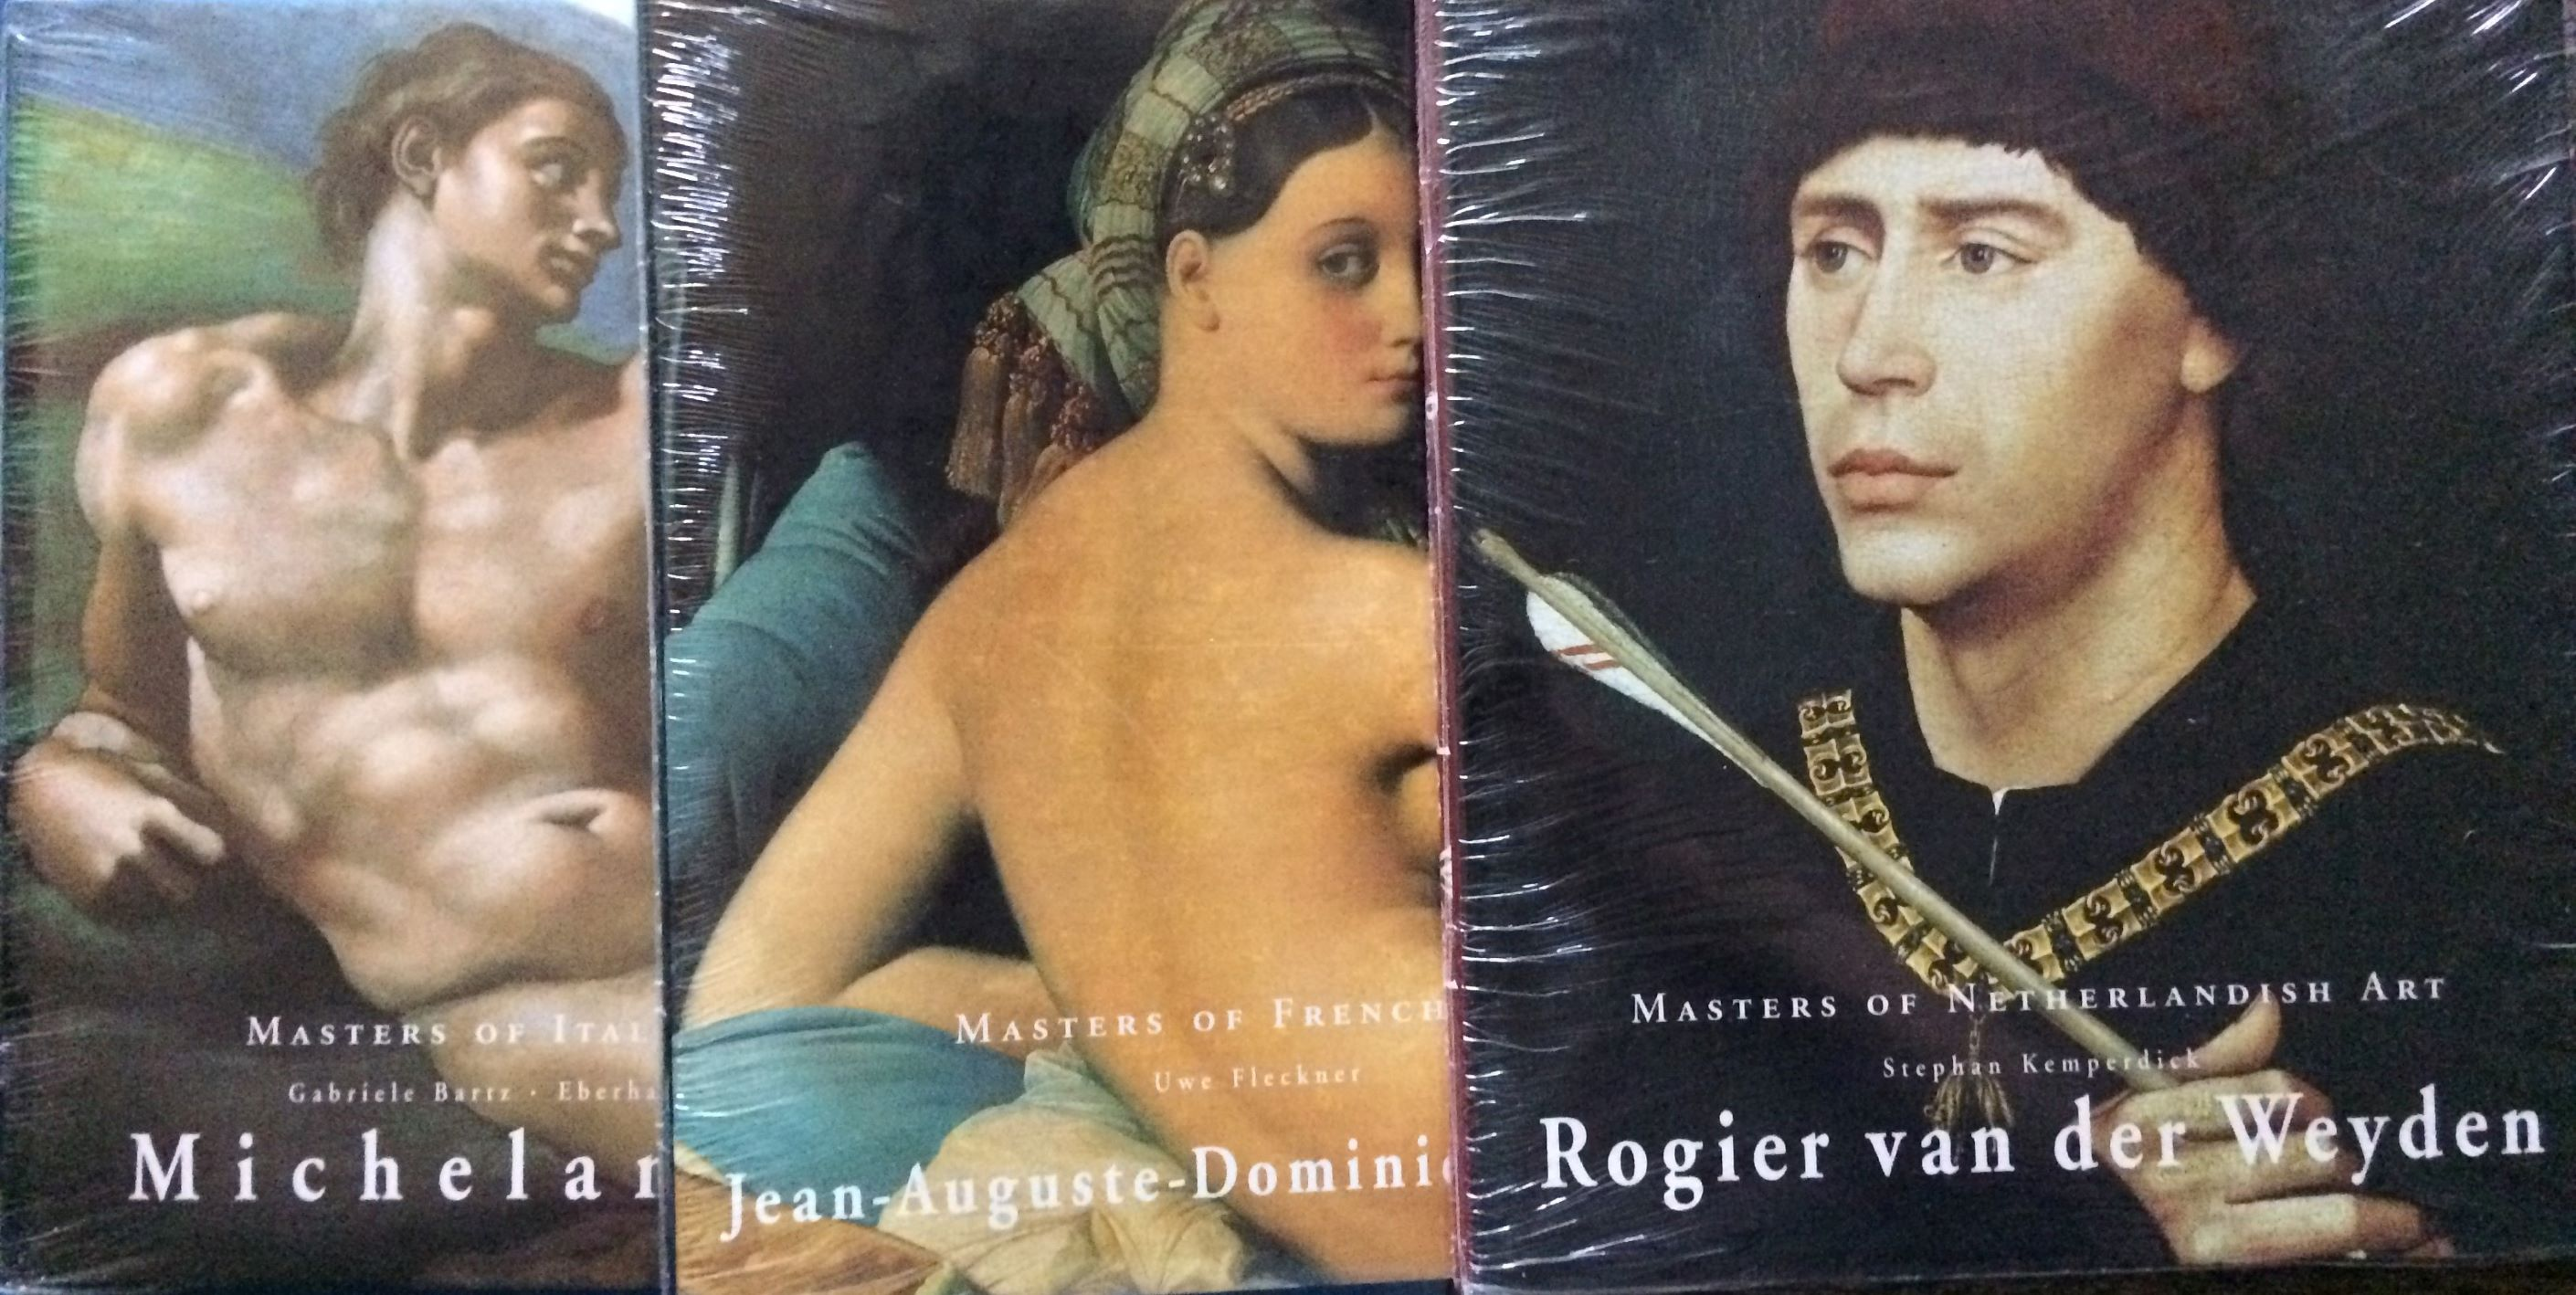 Image for (Three Titles from the Masters of . . . series) Rogier van der Weyden; Jean-Auguste-Dominique Ingres; Michelangelo.